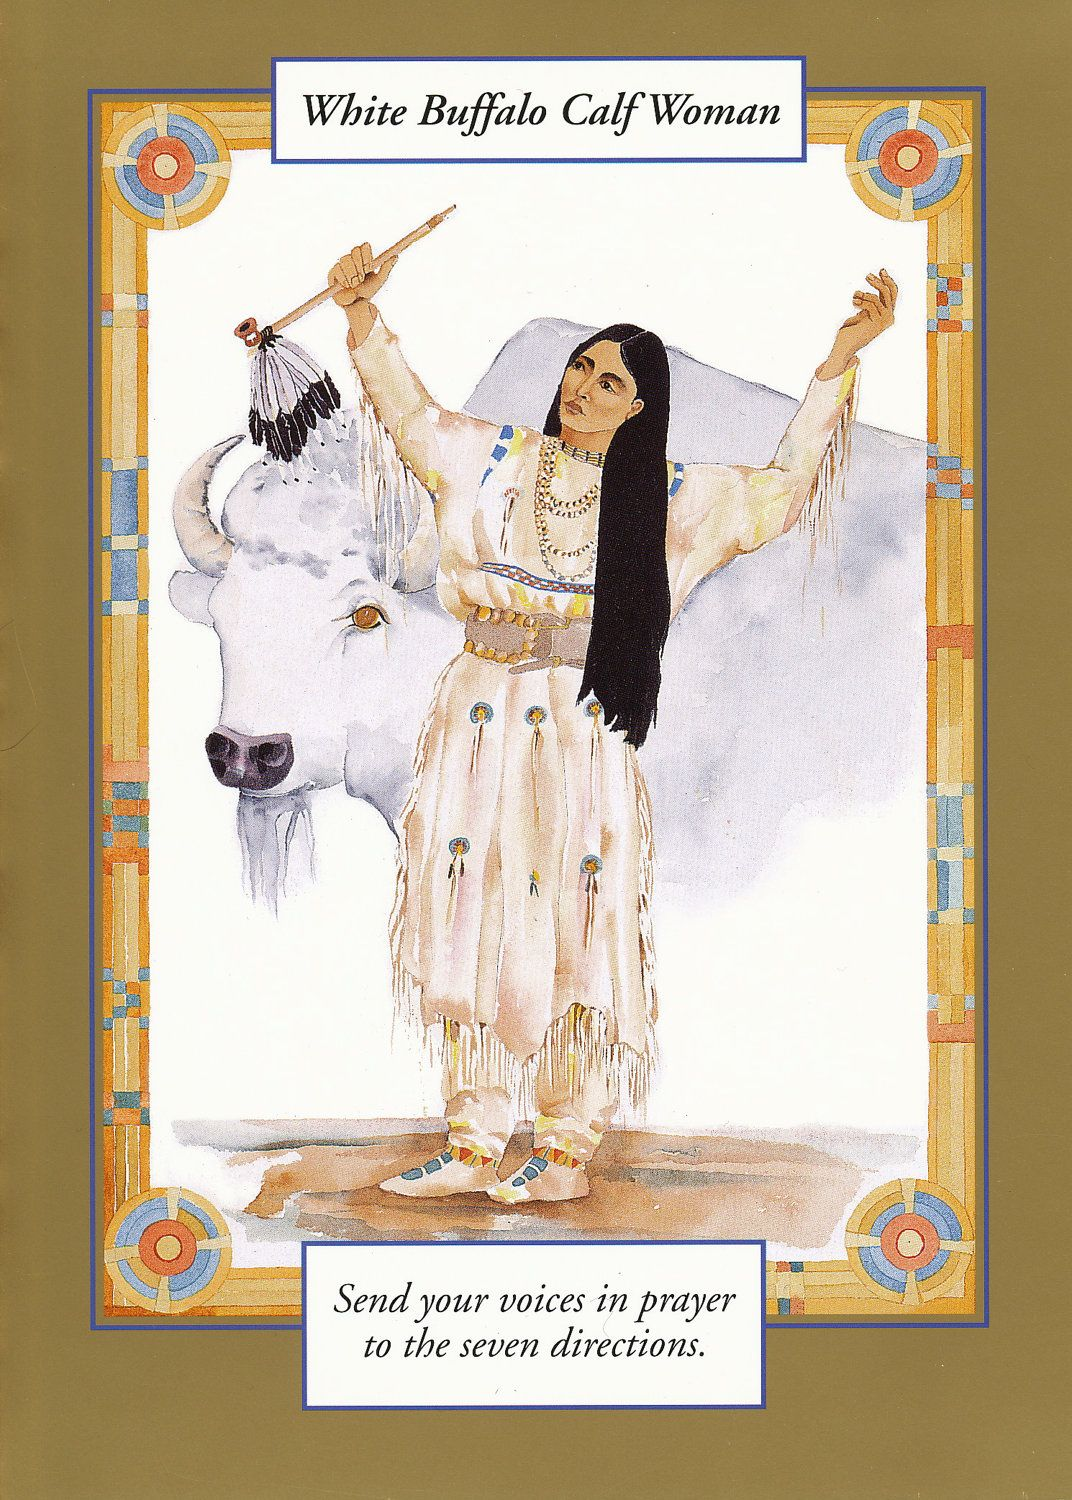 Buffalo calf woman google search animal totem buffalo white buffalo calf woman greeting card watercolor spiritual saints and sages title white buffalo calf woman size 5 x 7 inches kristyandbryce Choice Image